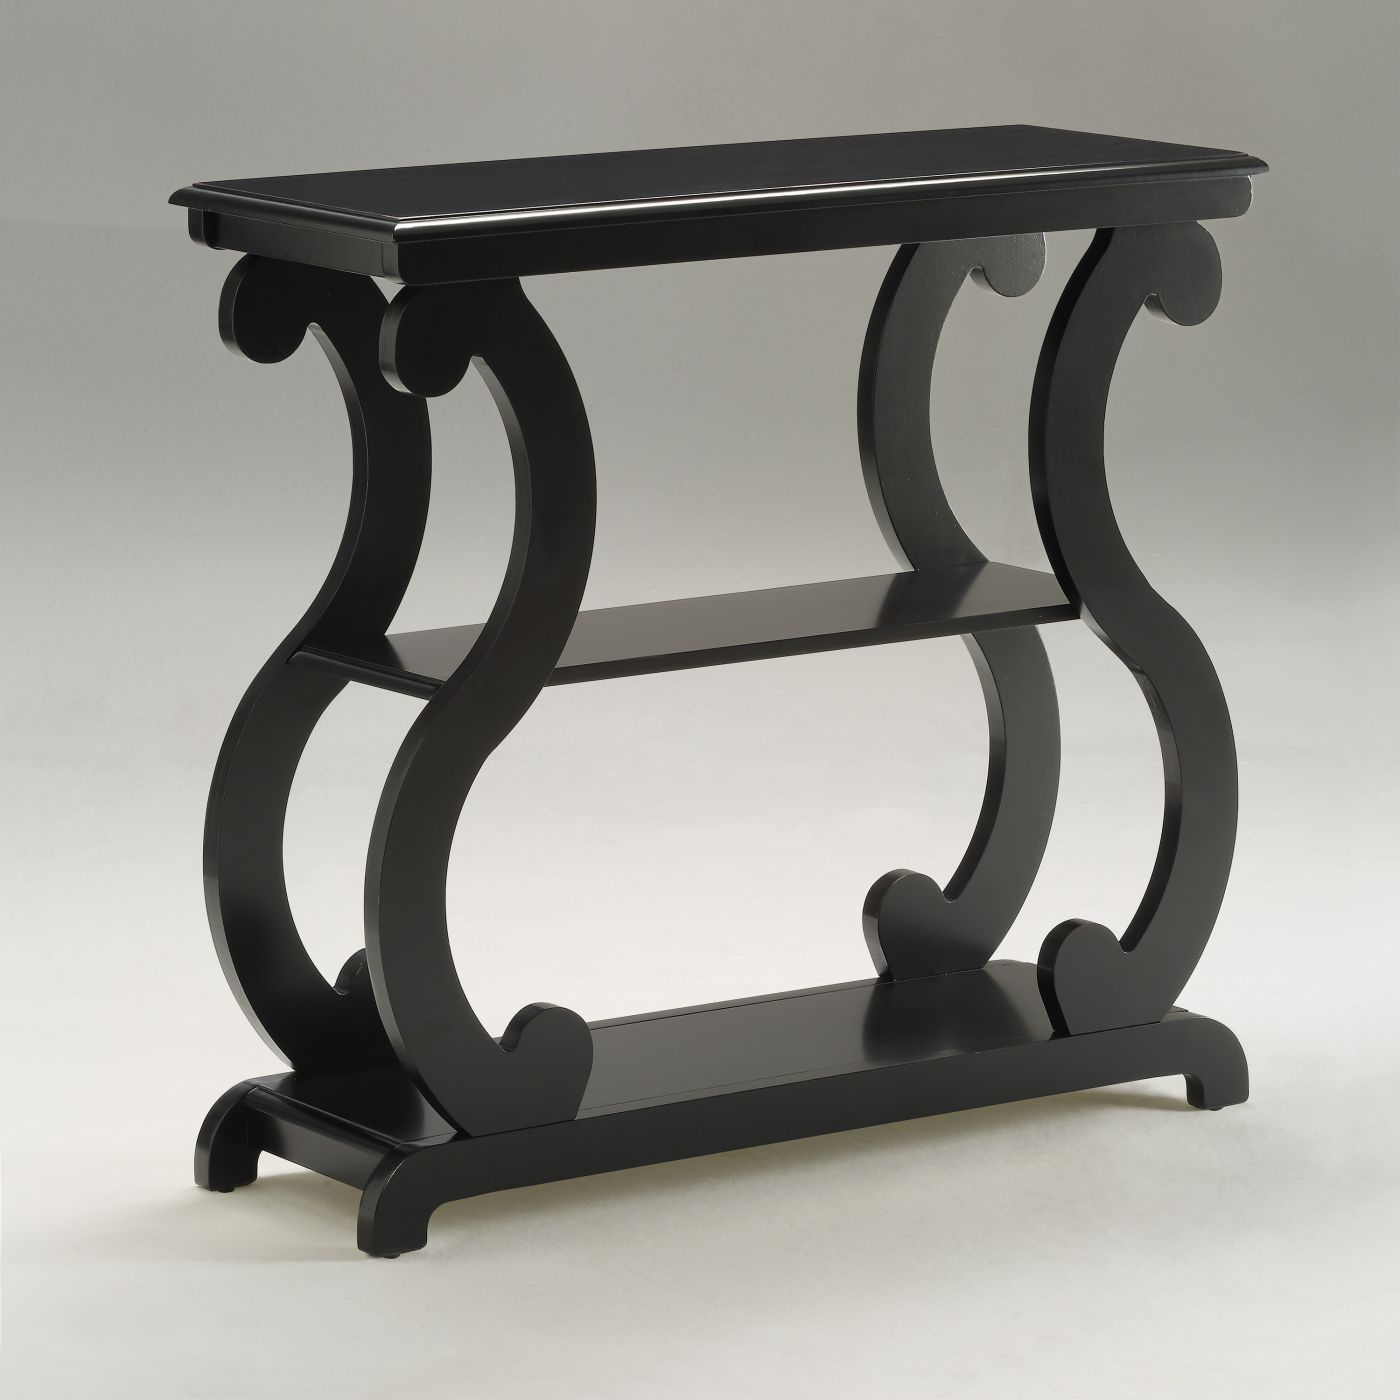 Lucy Black Sofa Table Console | 7915 Bk | Crown Mark With Lucy Dark Grey Sofa Chairs (Image 18 of 25)